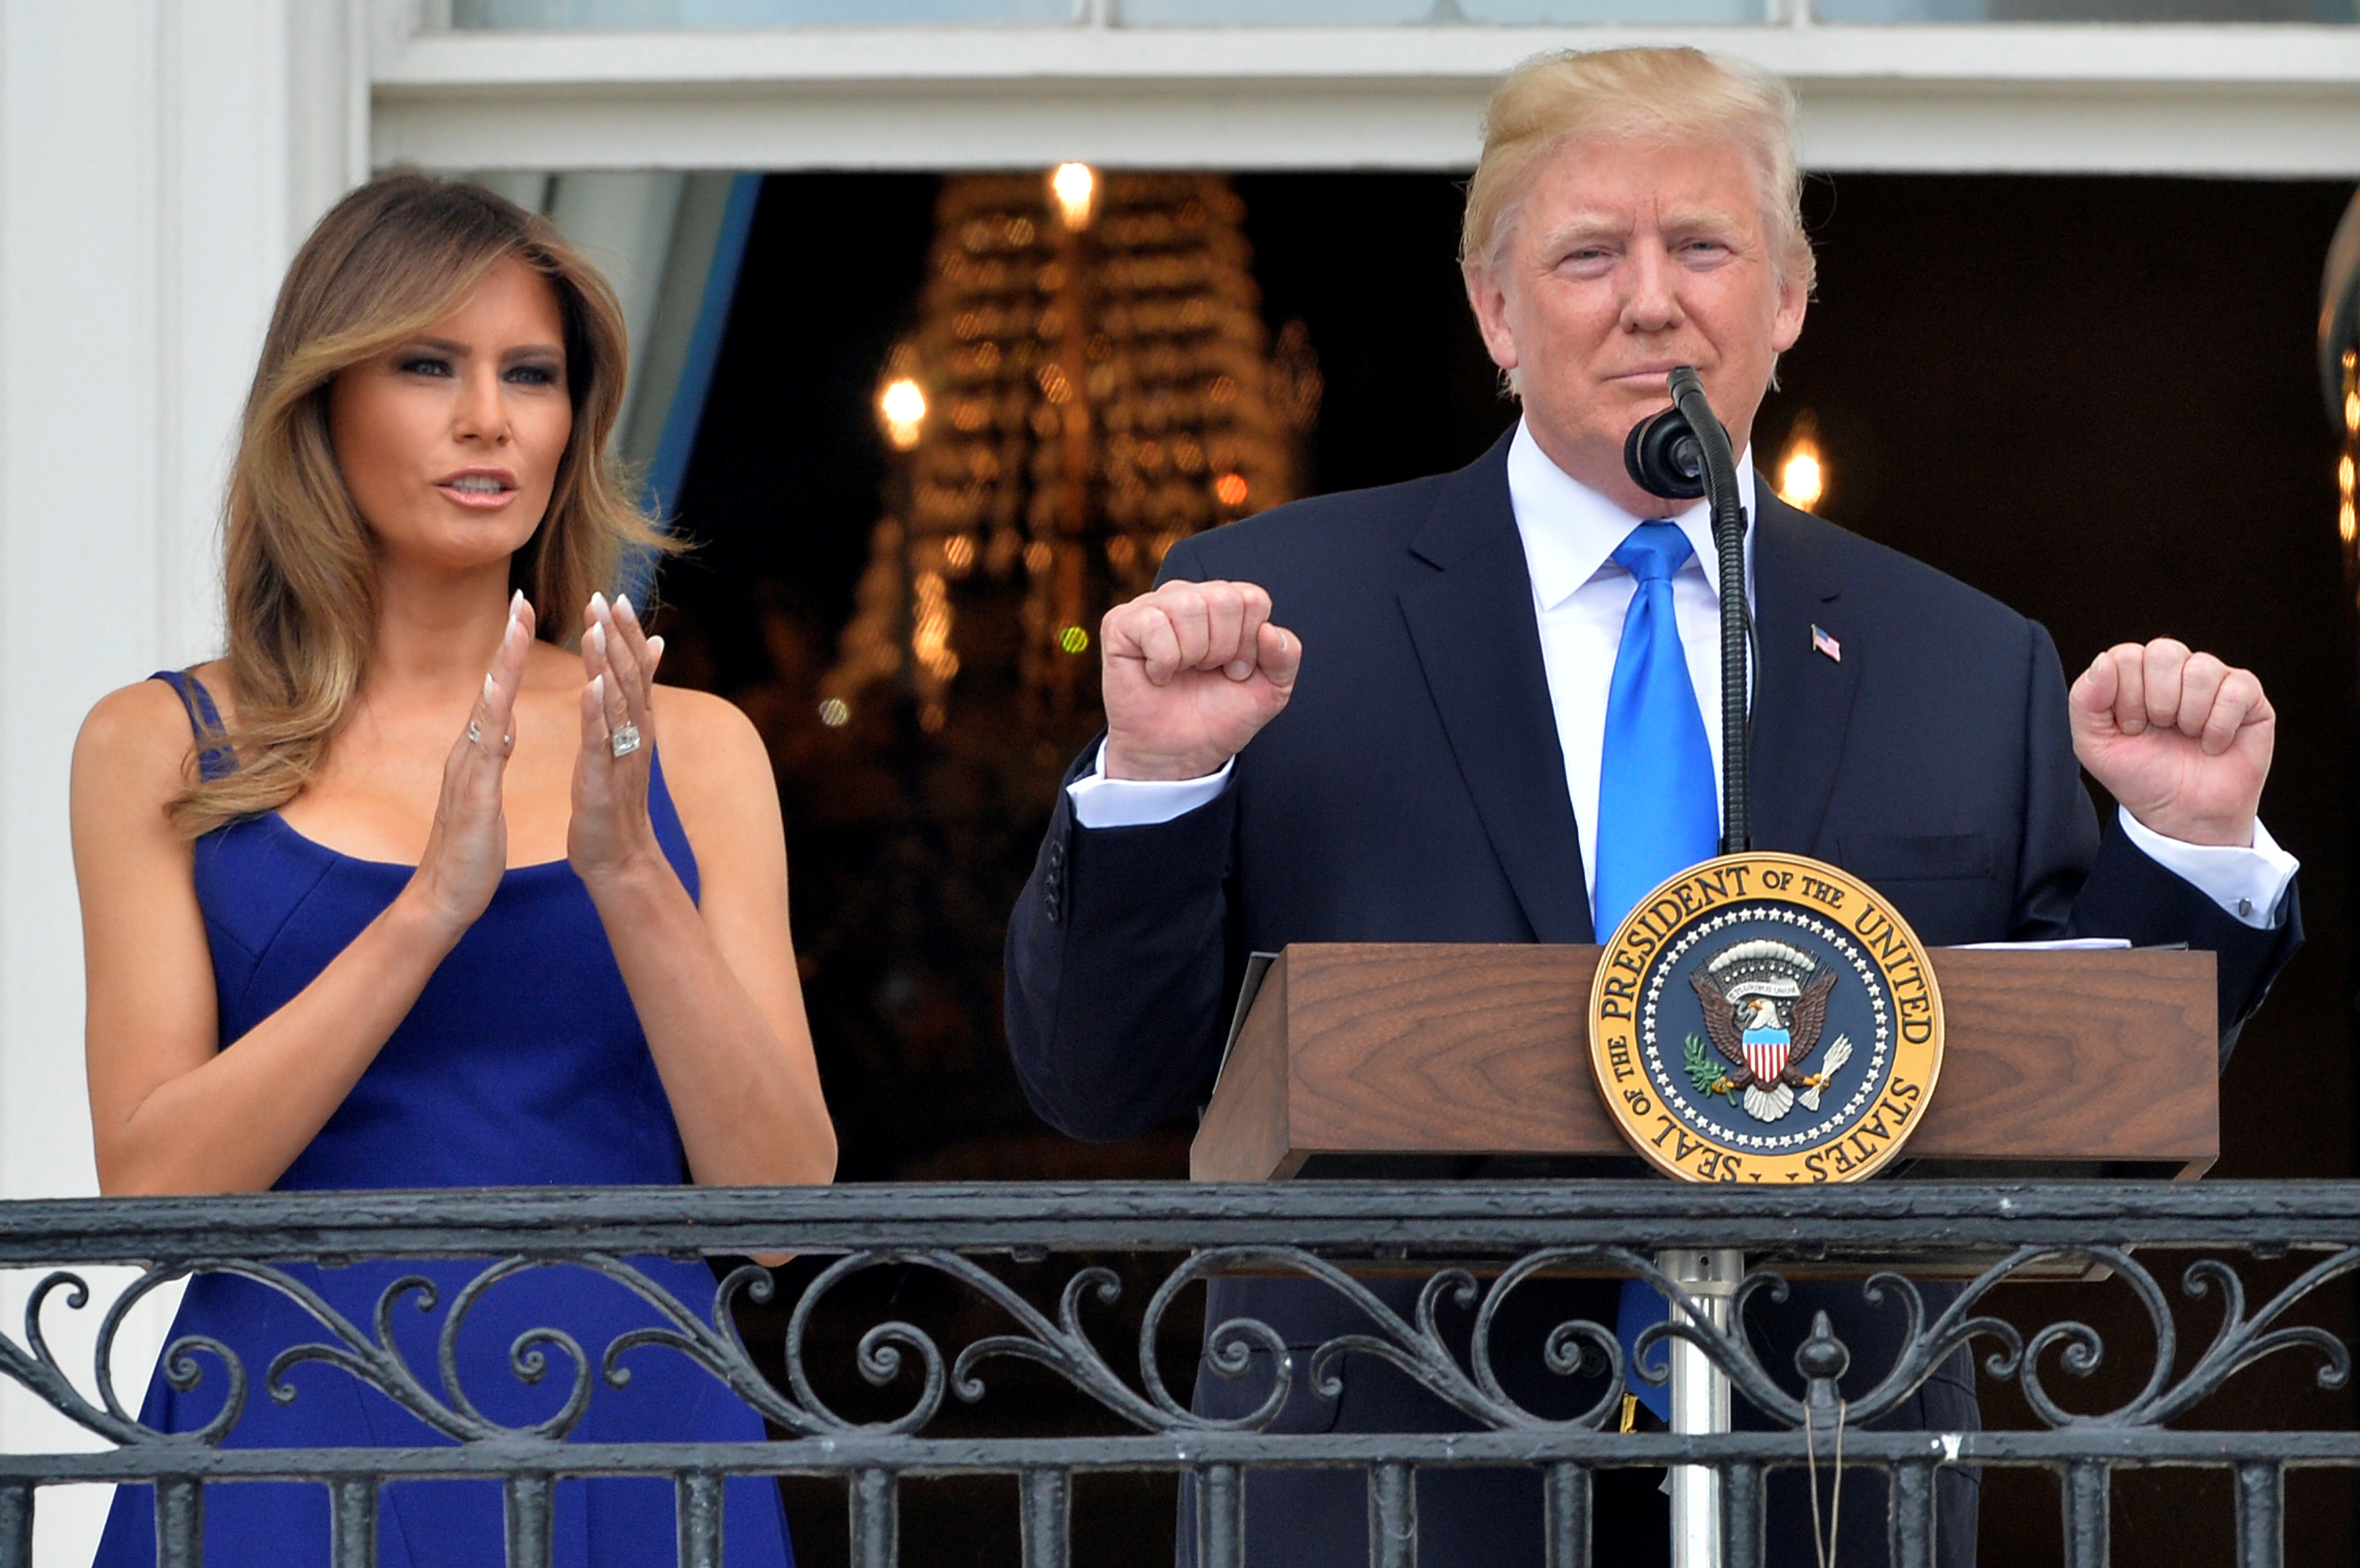 President Trump concludes his remarks while First Lady Melania Trump applauds as they welcome military families on the South Lawn of the White House. (REUTERS/Mike Theiler)